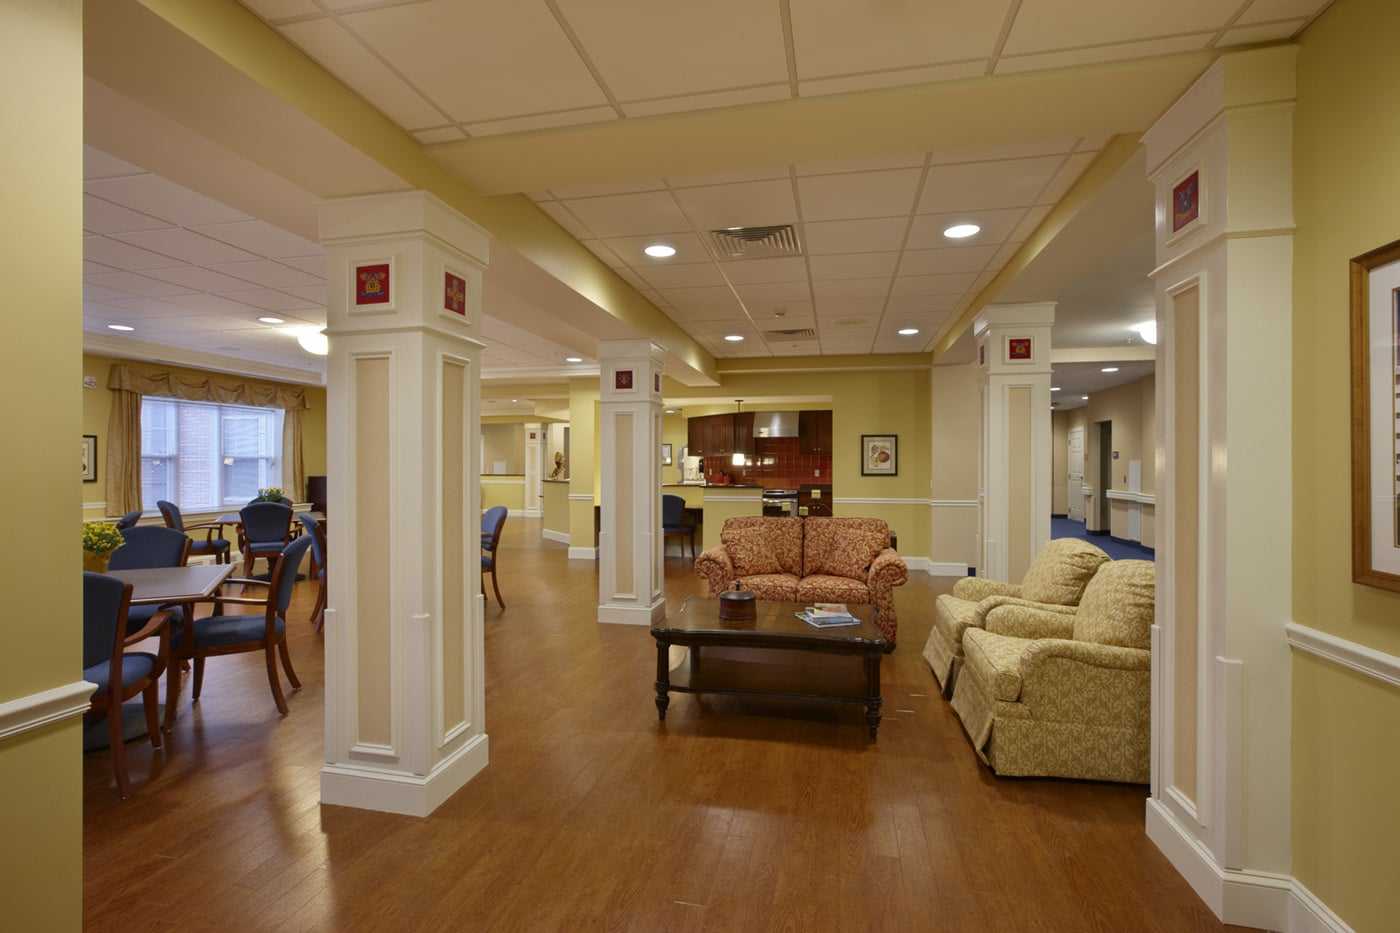 Brethren Village Retirement Community  Terrace Crossing Assisted Living and Memory Support